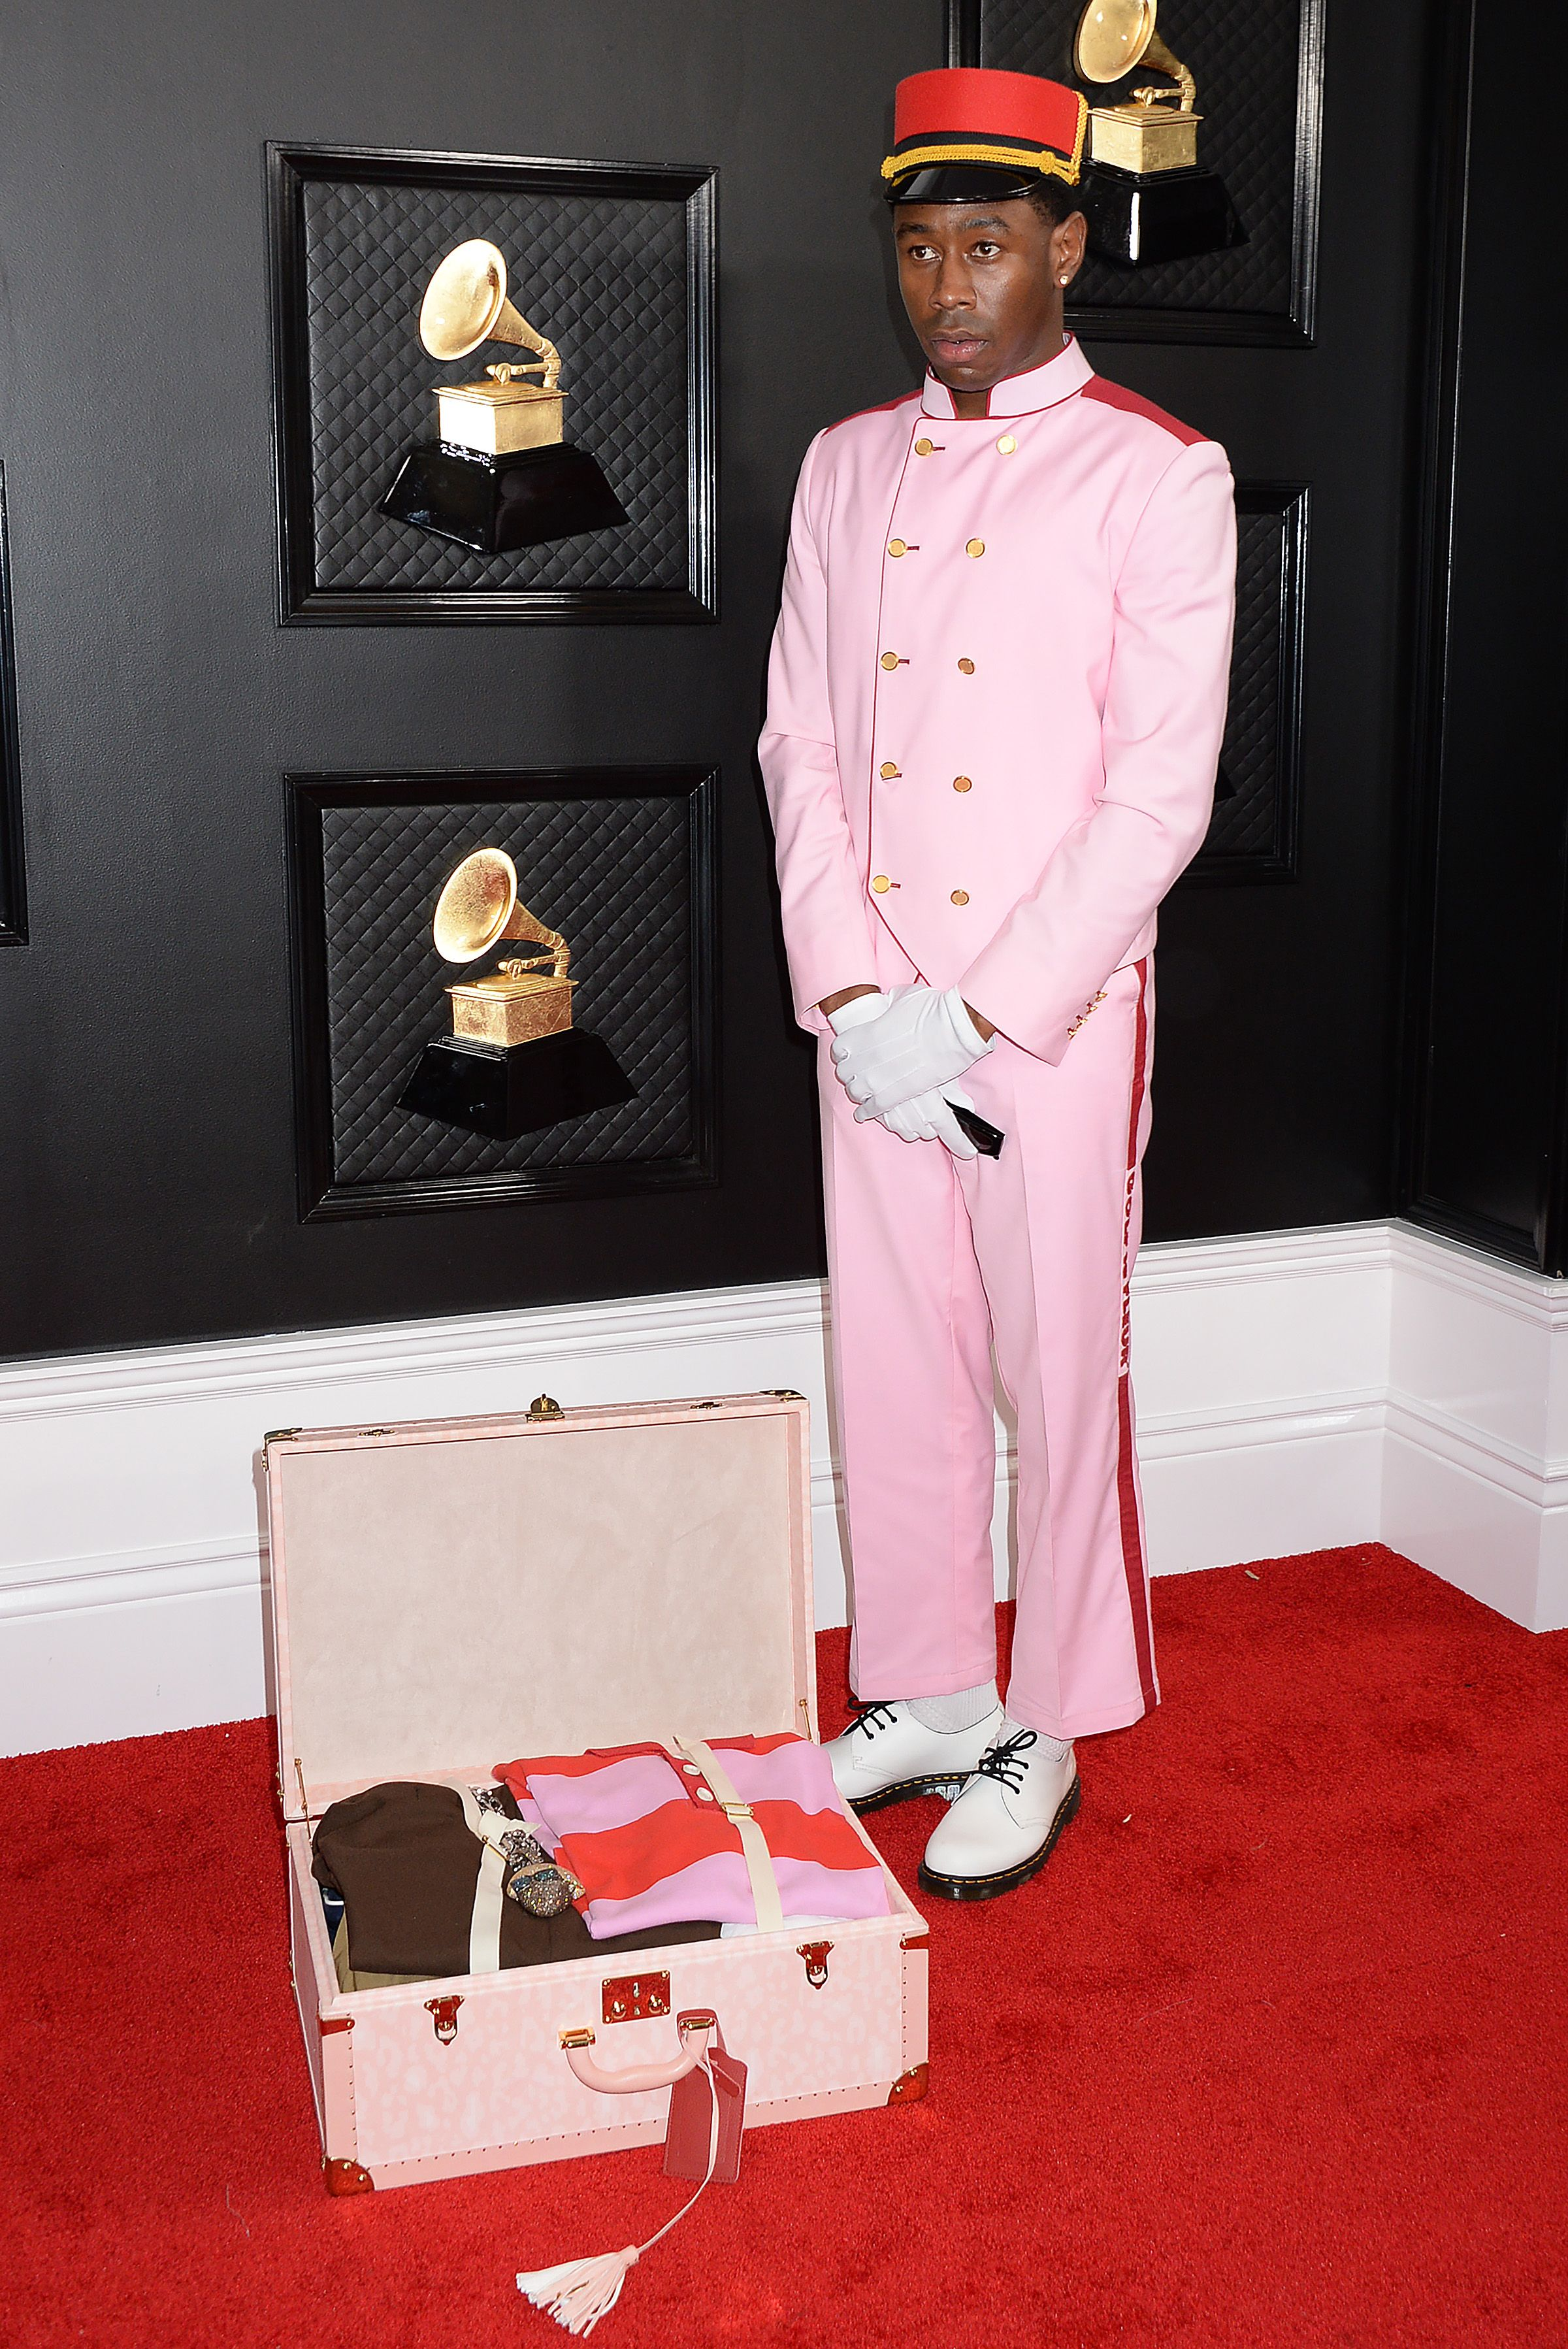 Tyler, the Creator - Tyler Gregory Okonma62nd Annual Grammy Awards, Arrivals, Los Angeles, USA - 26 Jan 2020 Wearing GolfLeFleur, Own Collection